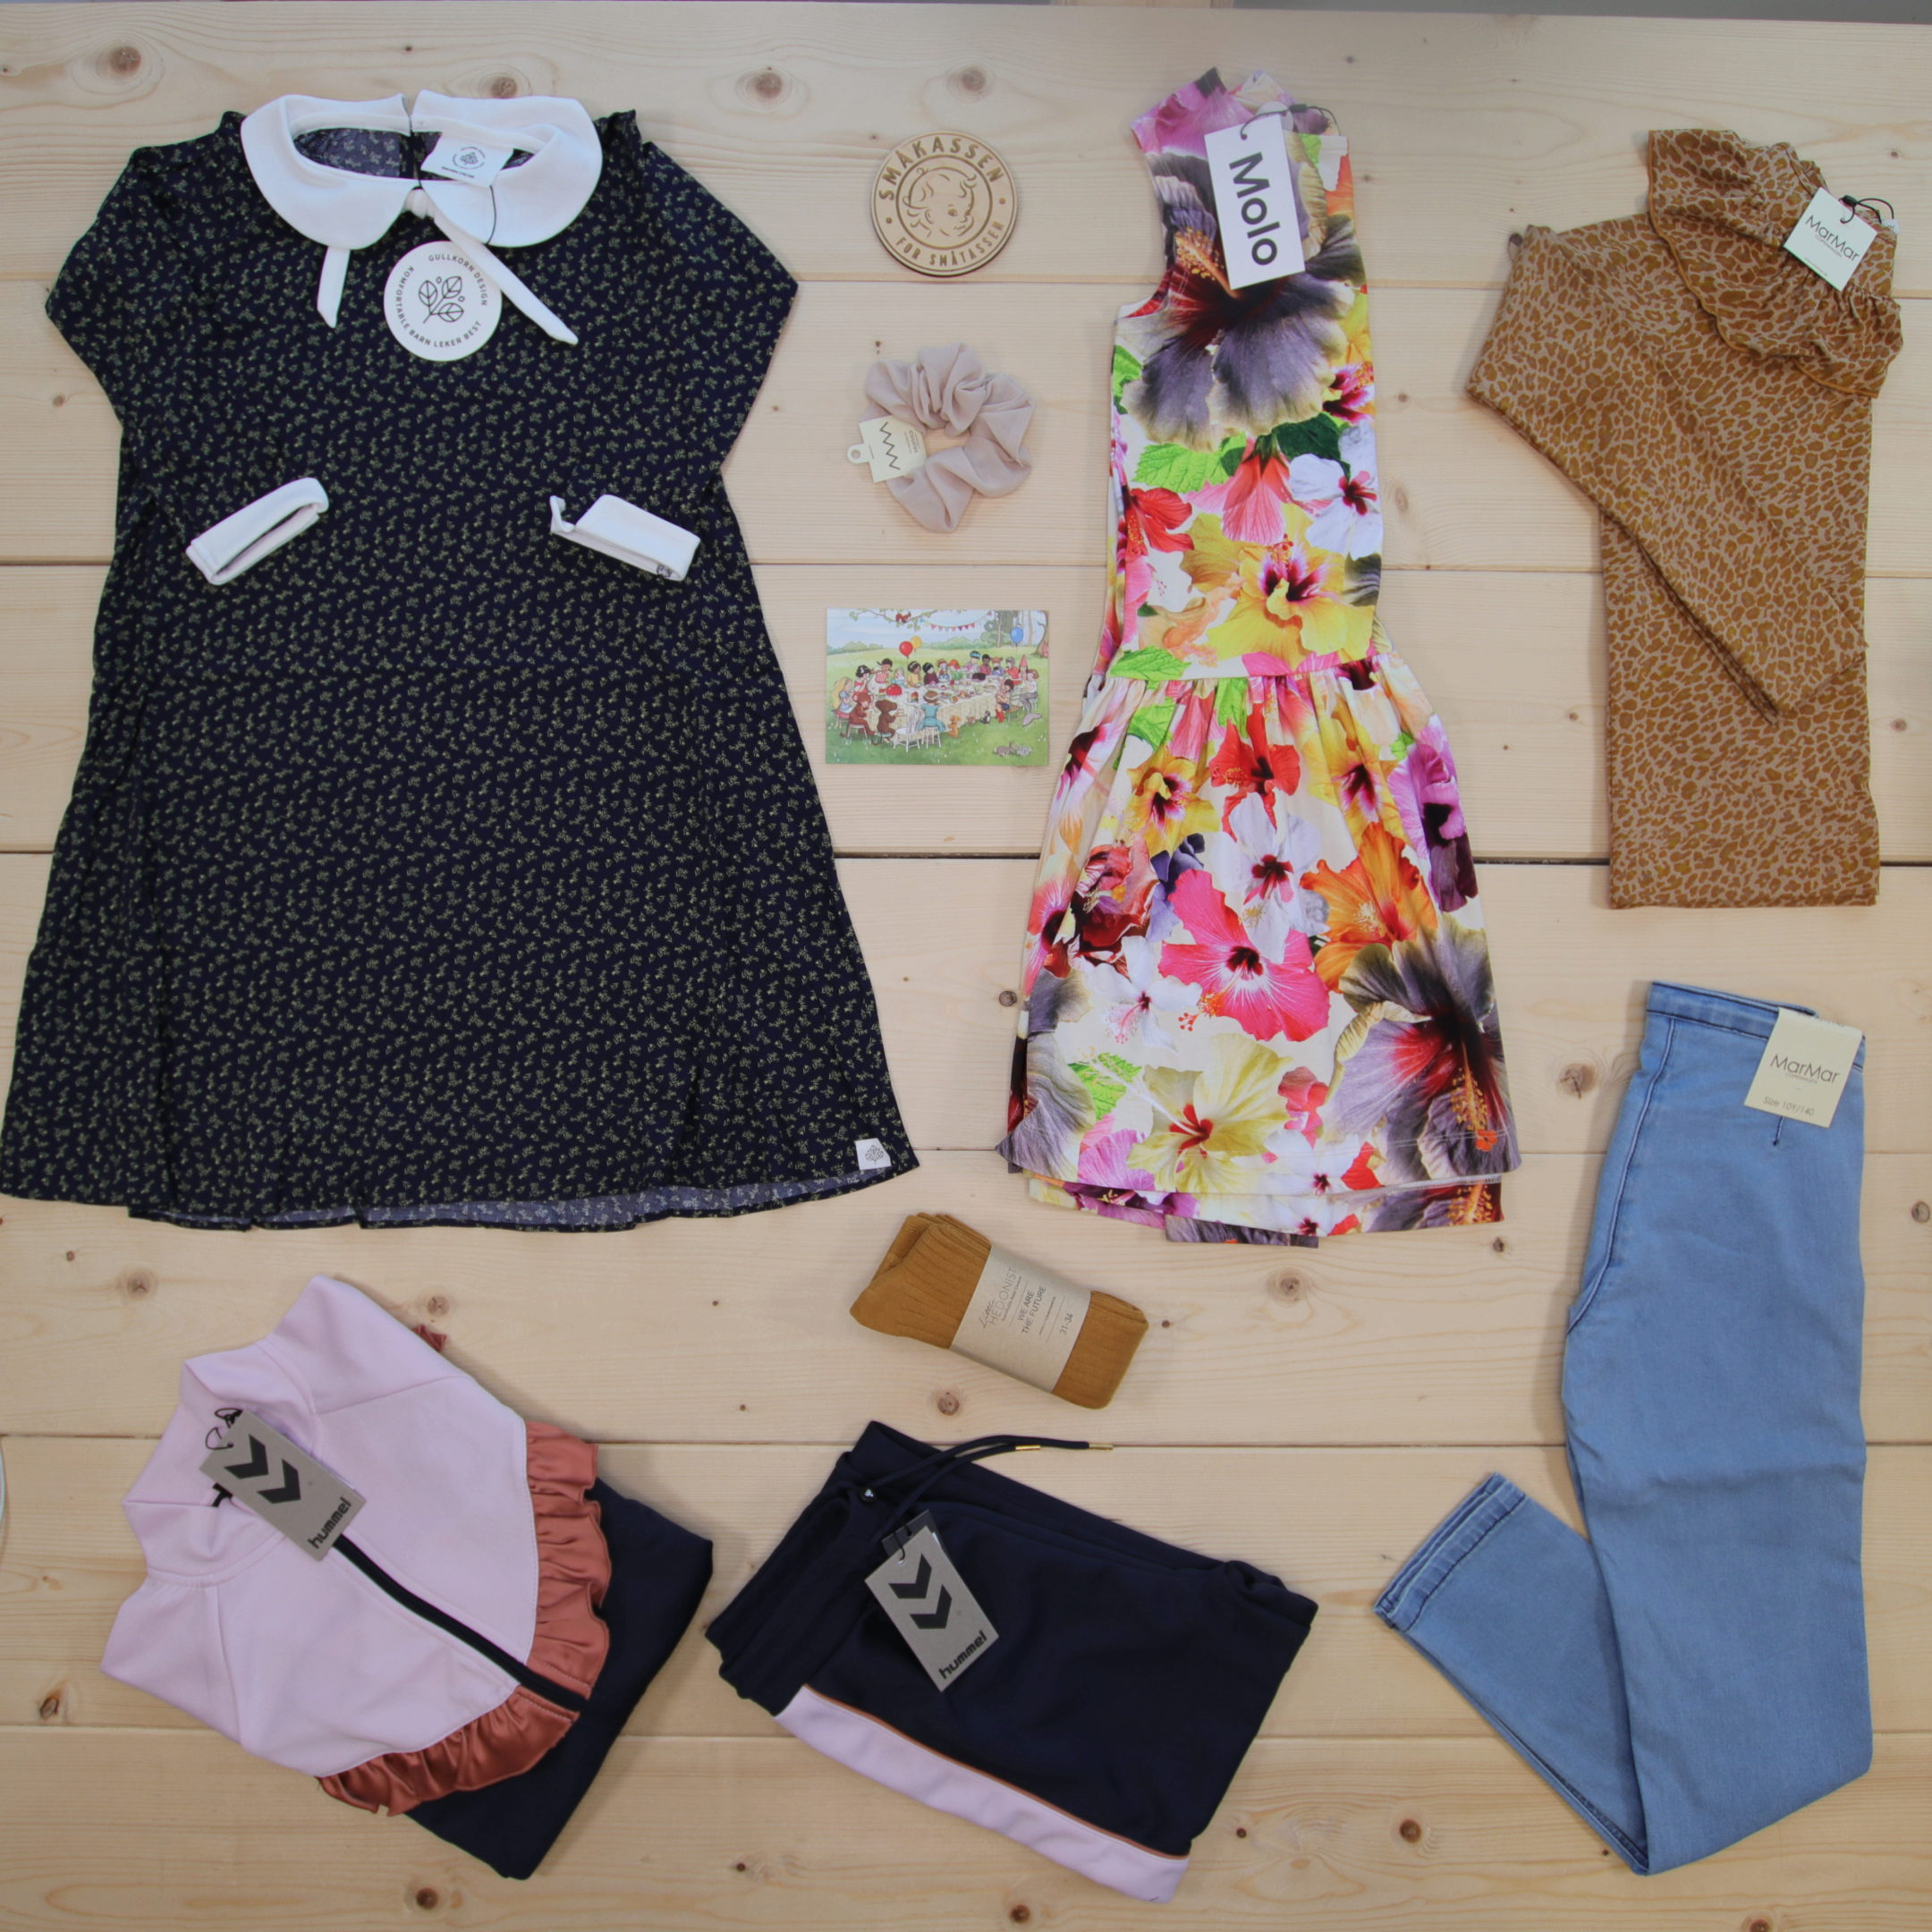 This is a 3000 NOK* Småkassen that we prepared for a girl  in the styles cute, cool, and colorful in size 140